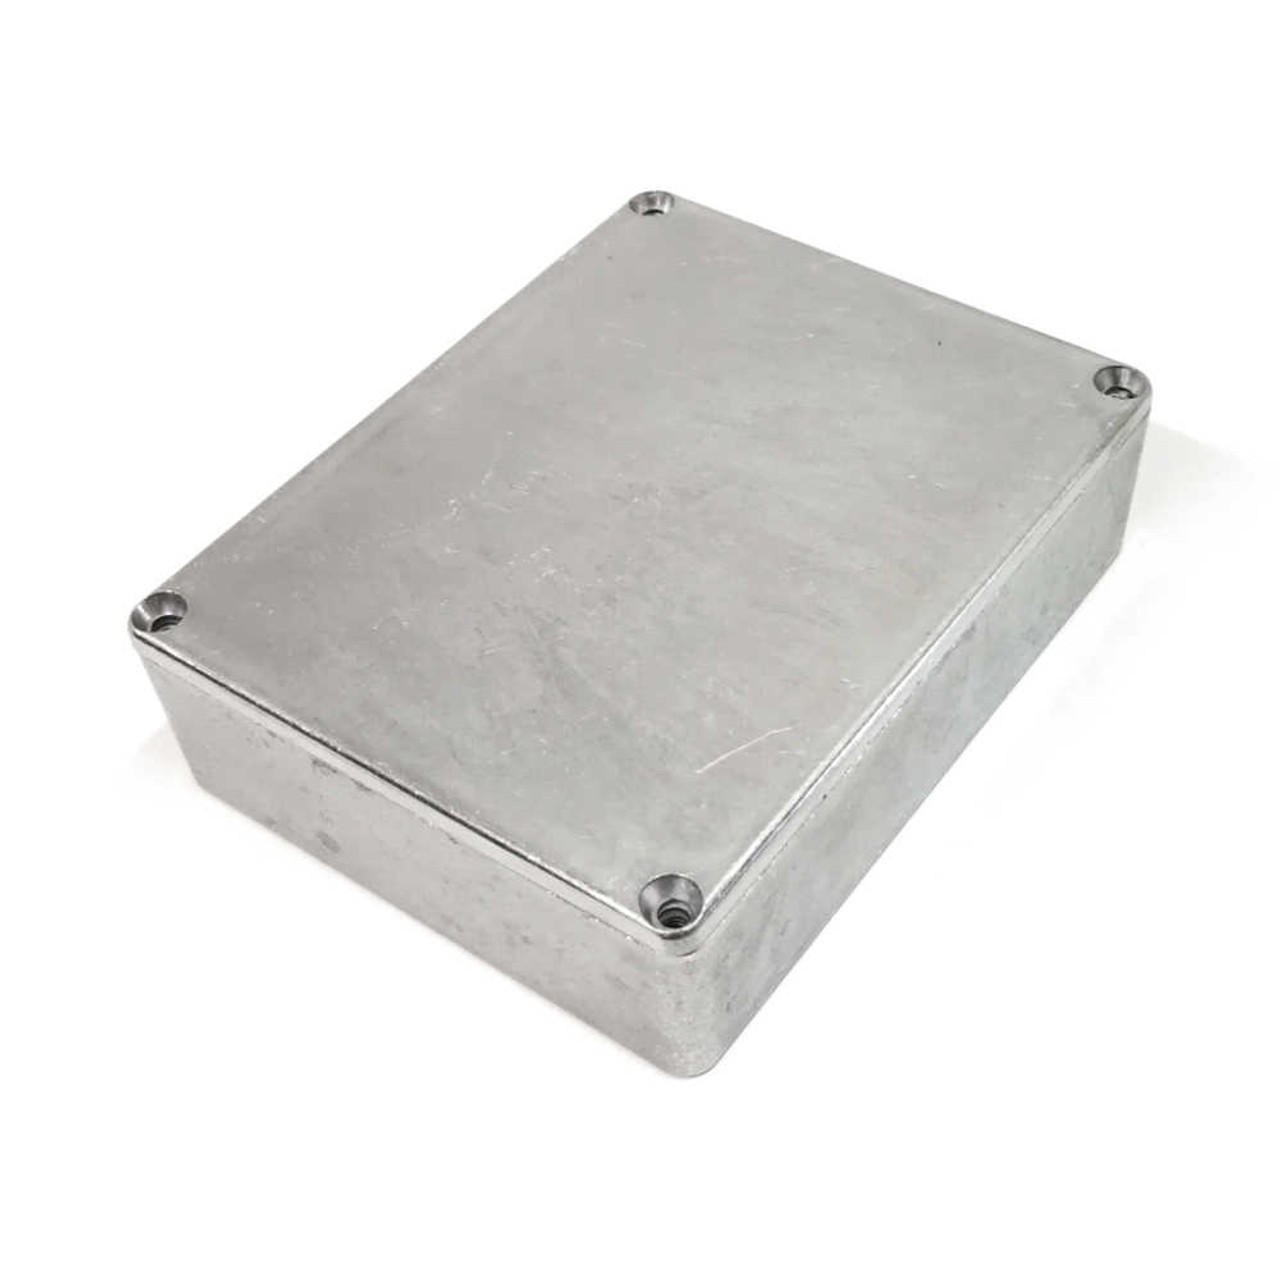 Generic 1590BB - Medium Pedal Enclosure